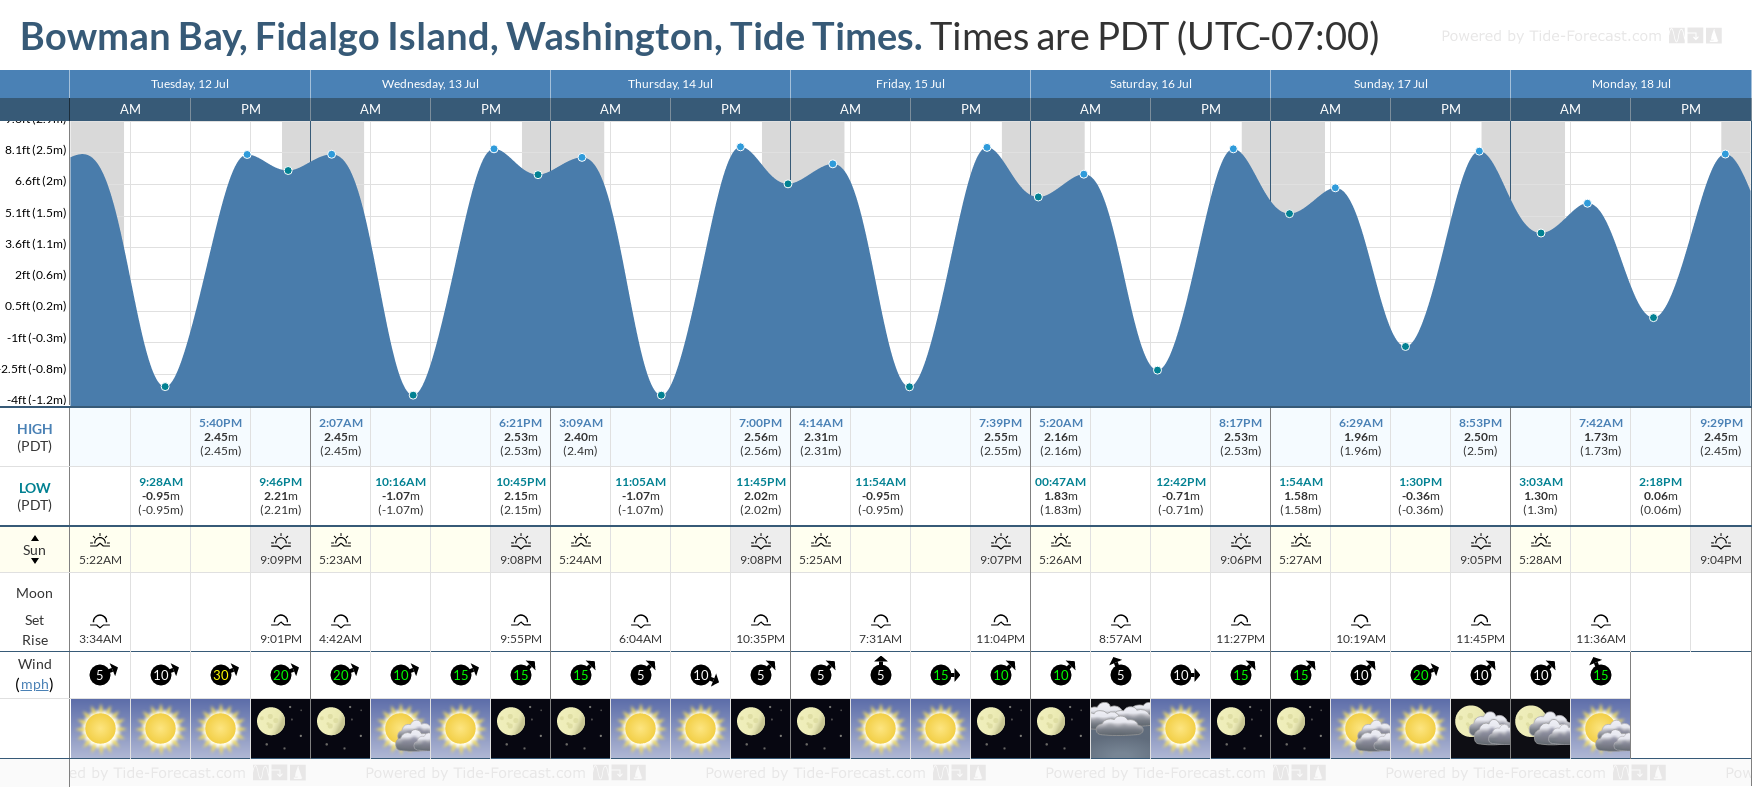 Bowman Bay, Fidalgo Island, Washington Tide Chart including high and low tide tide times for the next 7 days